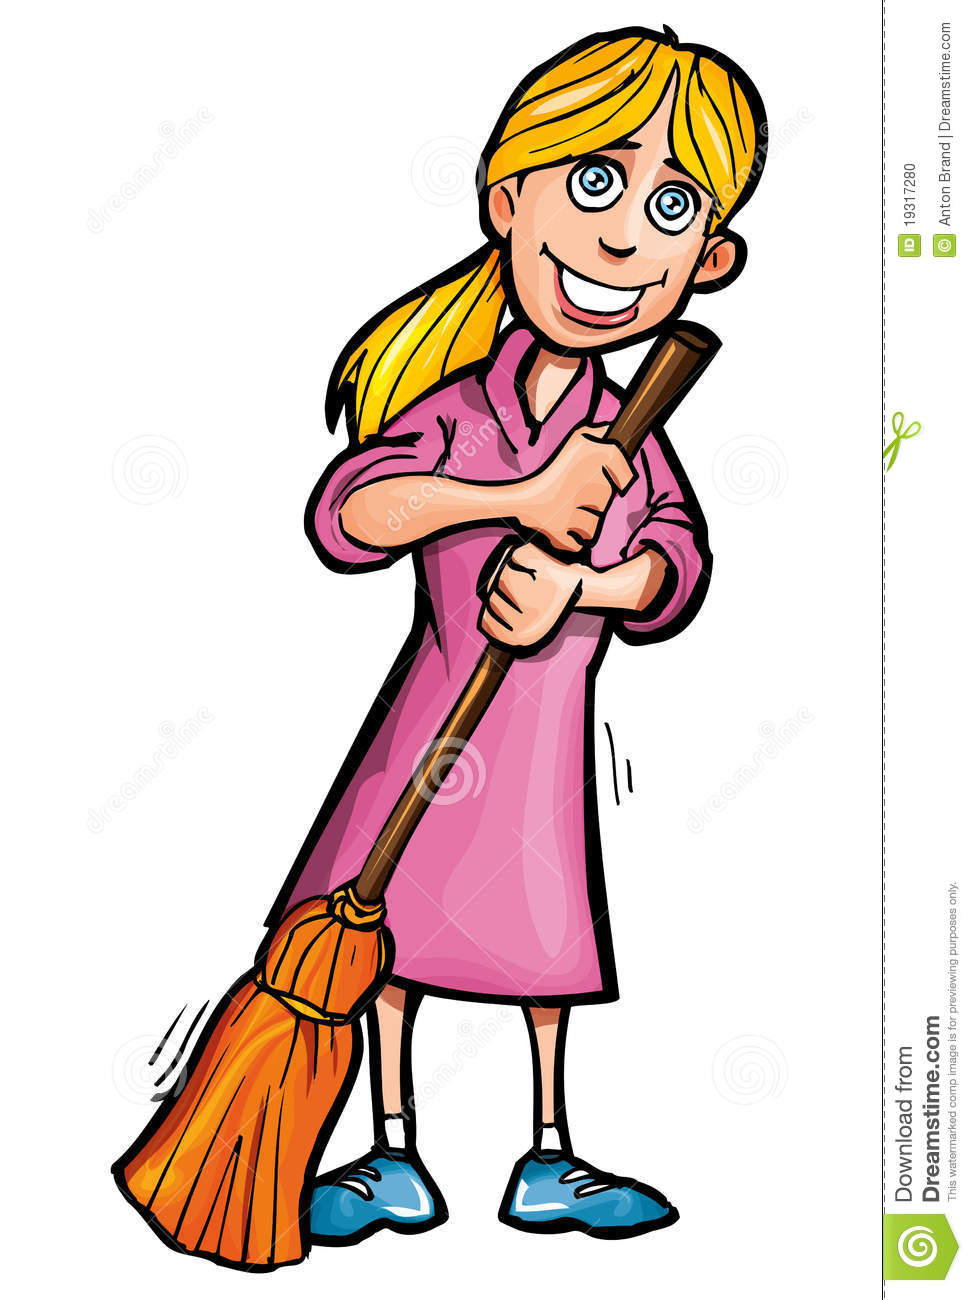 Cartoon Cleaner With A Broom Stock Photo Image 19317280